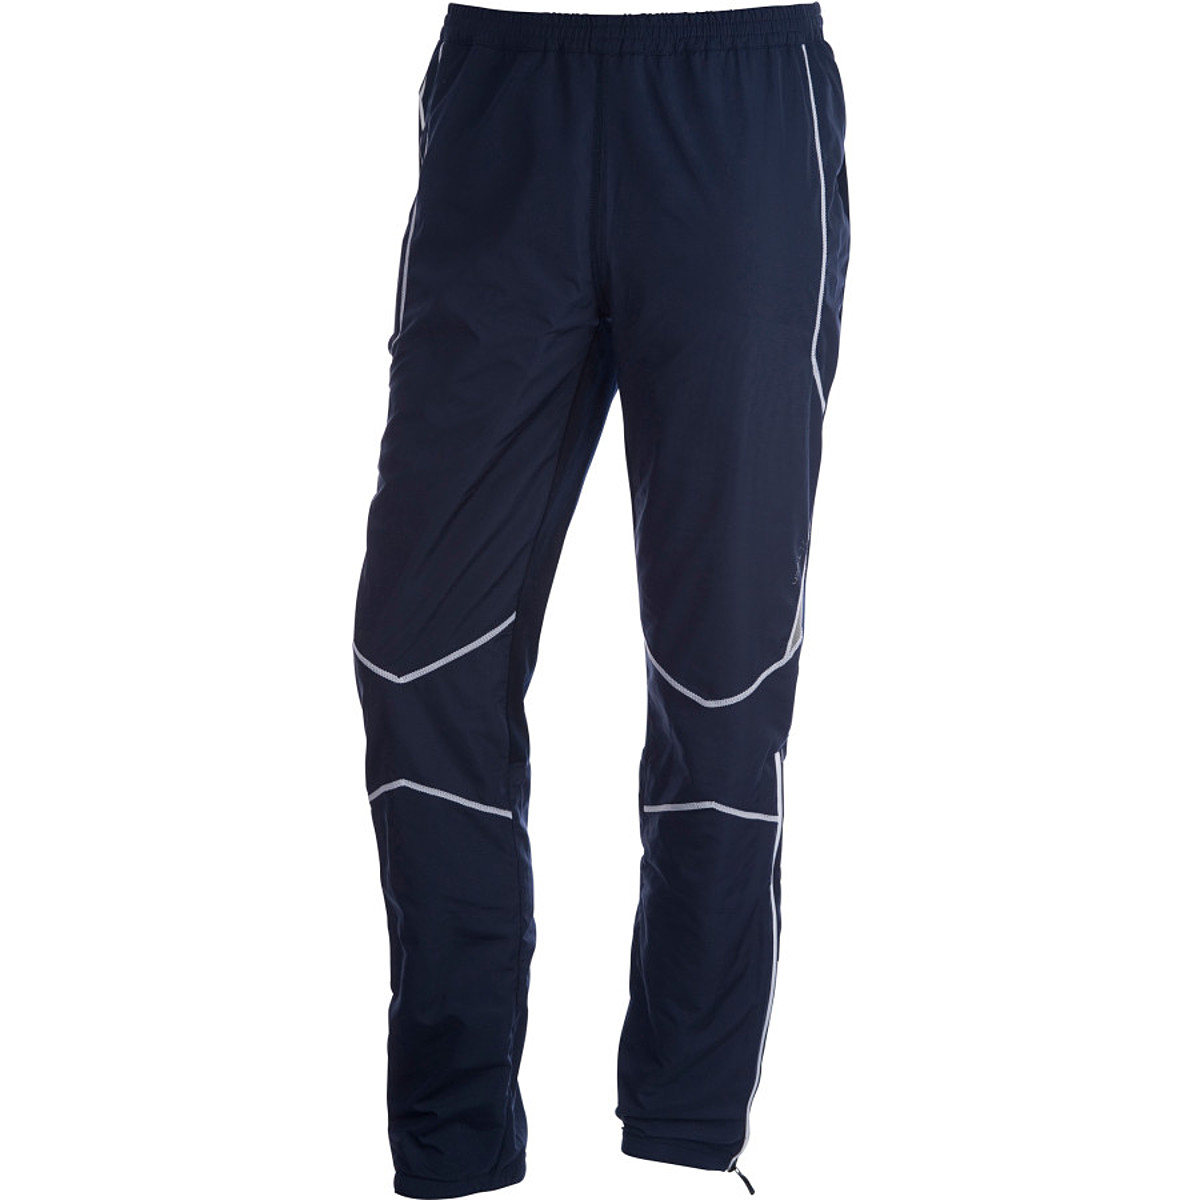 photo of a Swix outdoor clothing product